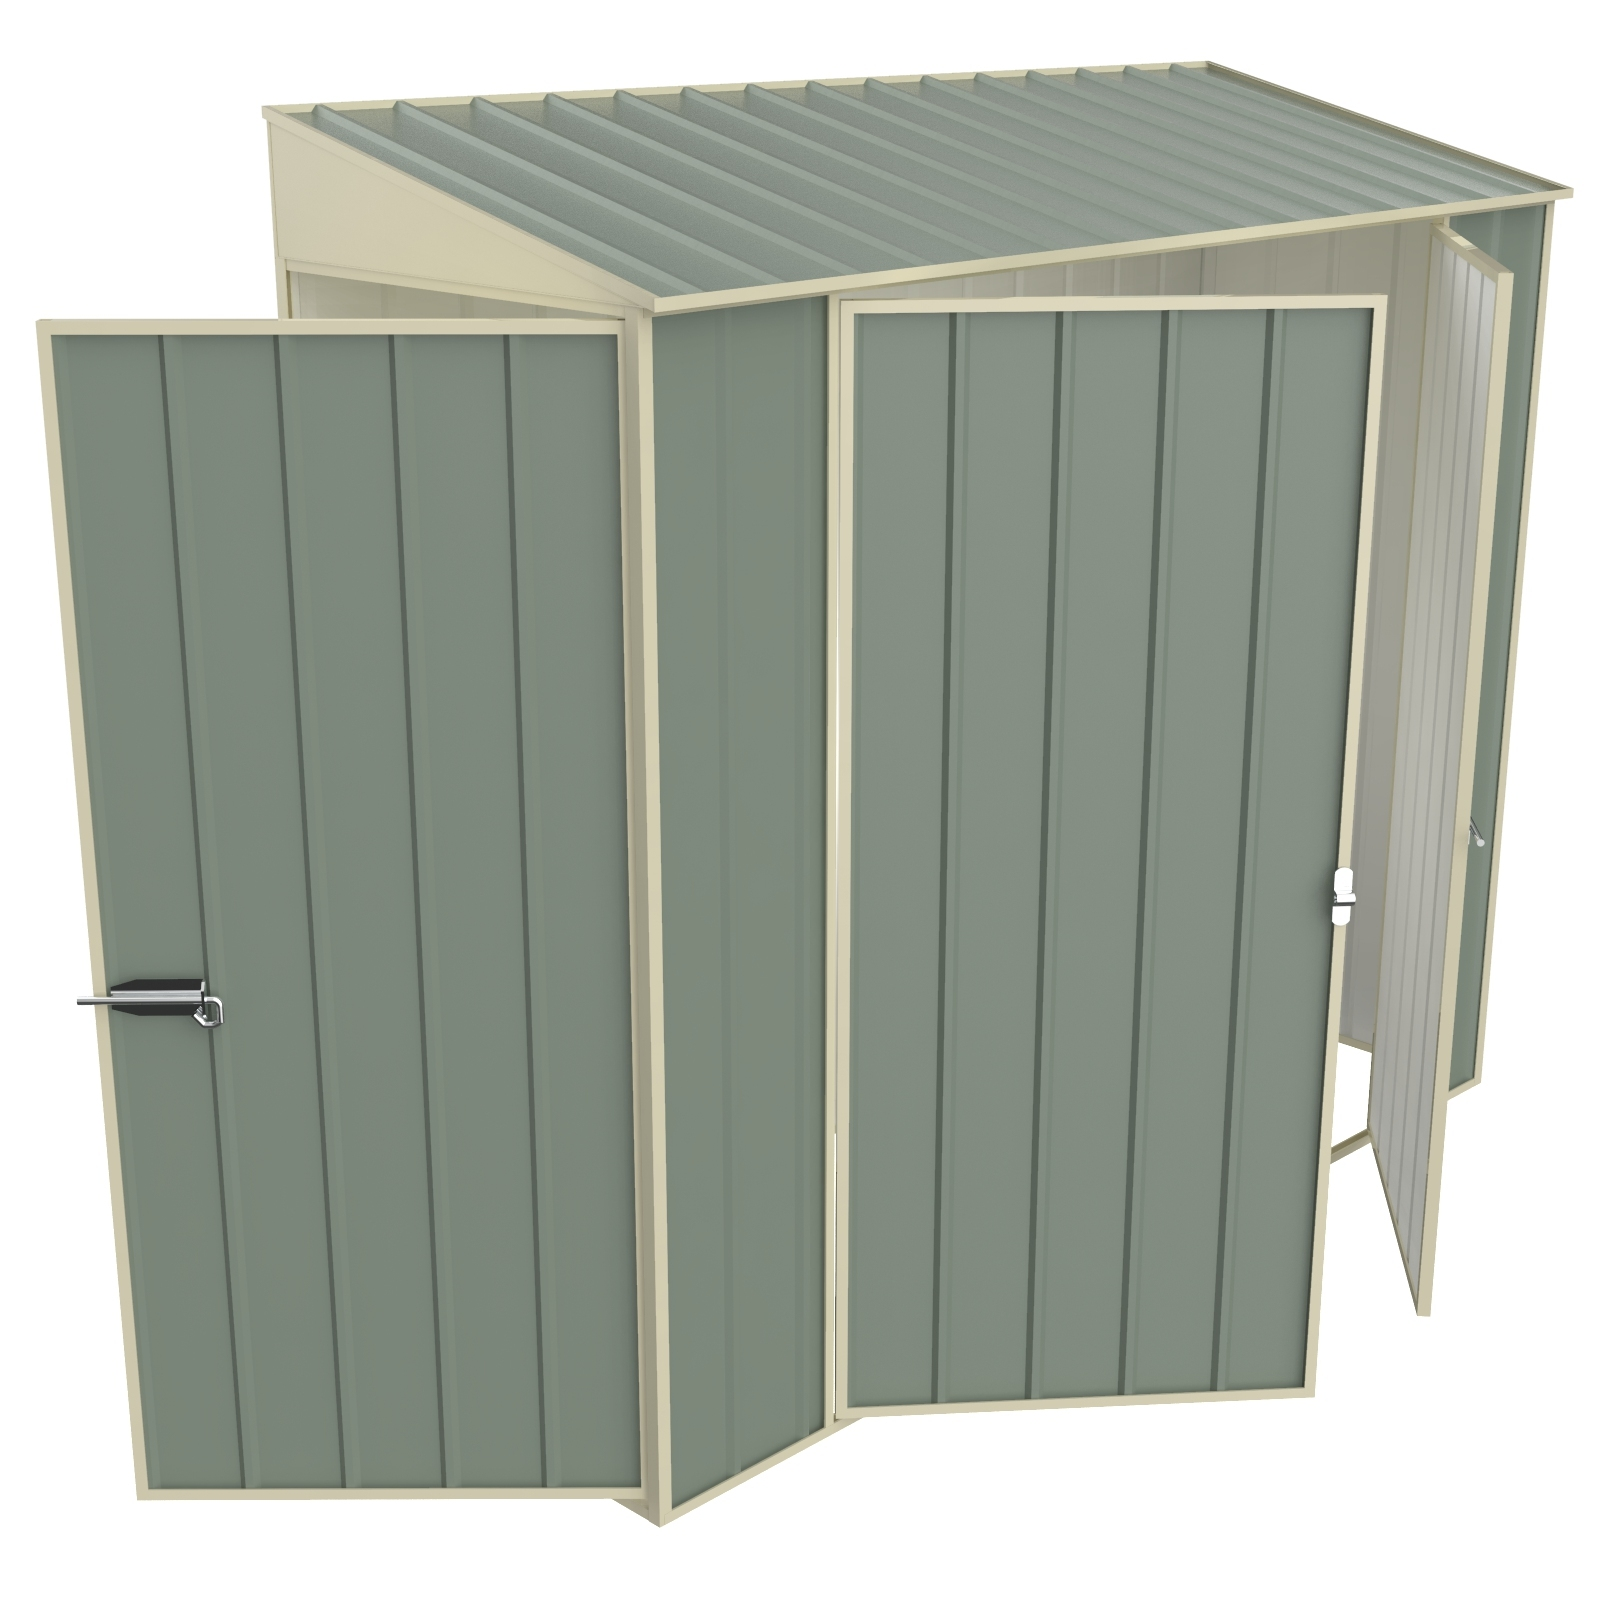 Build-a-Shed 0.8 x 2.3 x 2.0m Skillion Double Hinged Side Door Shed - Green